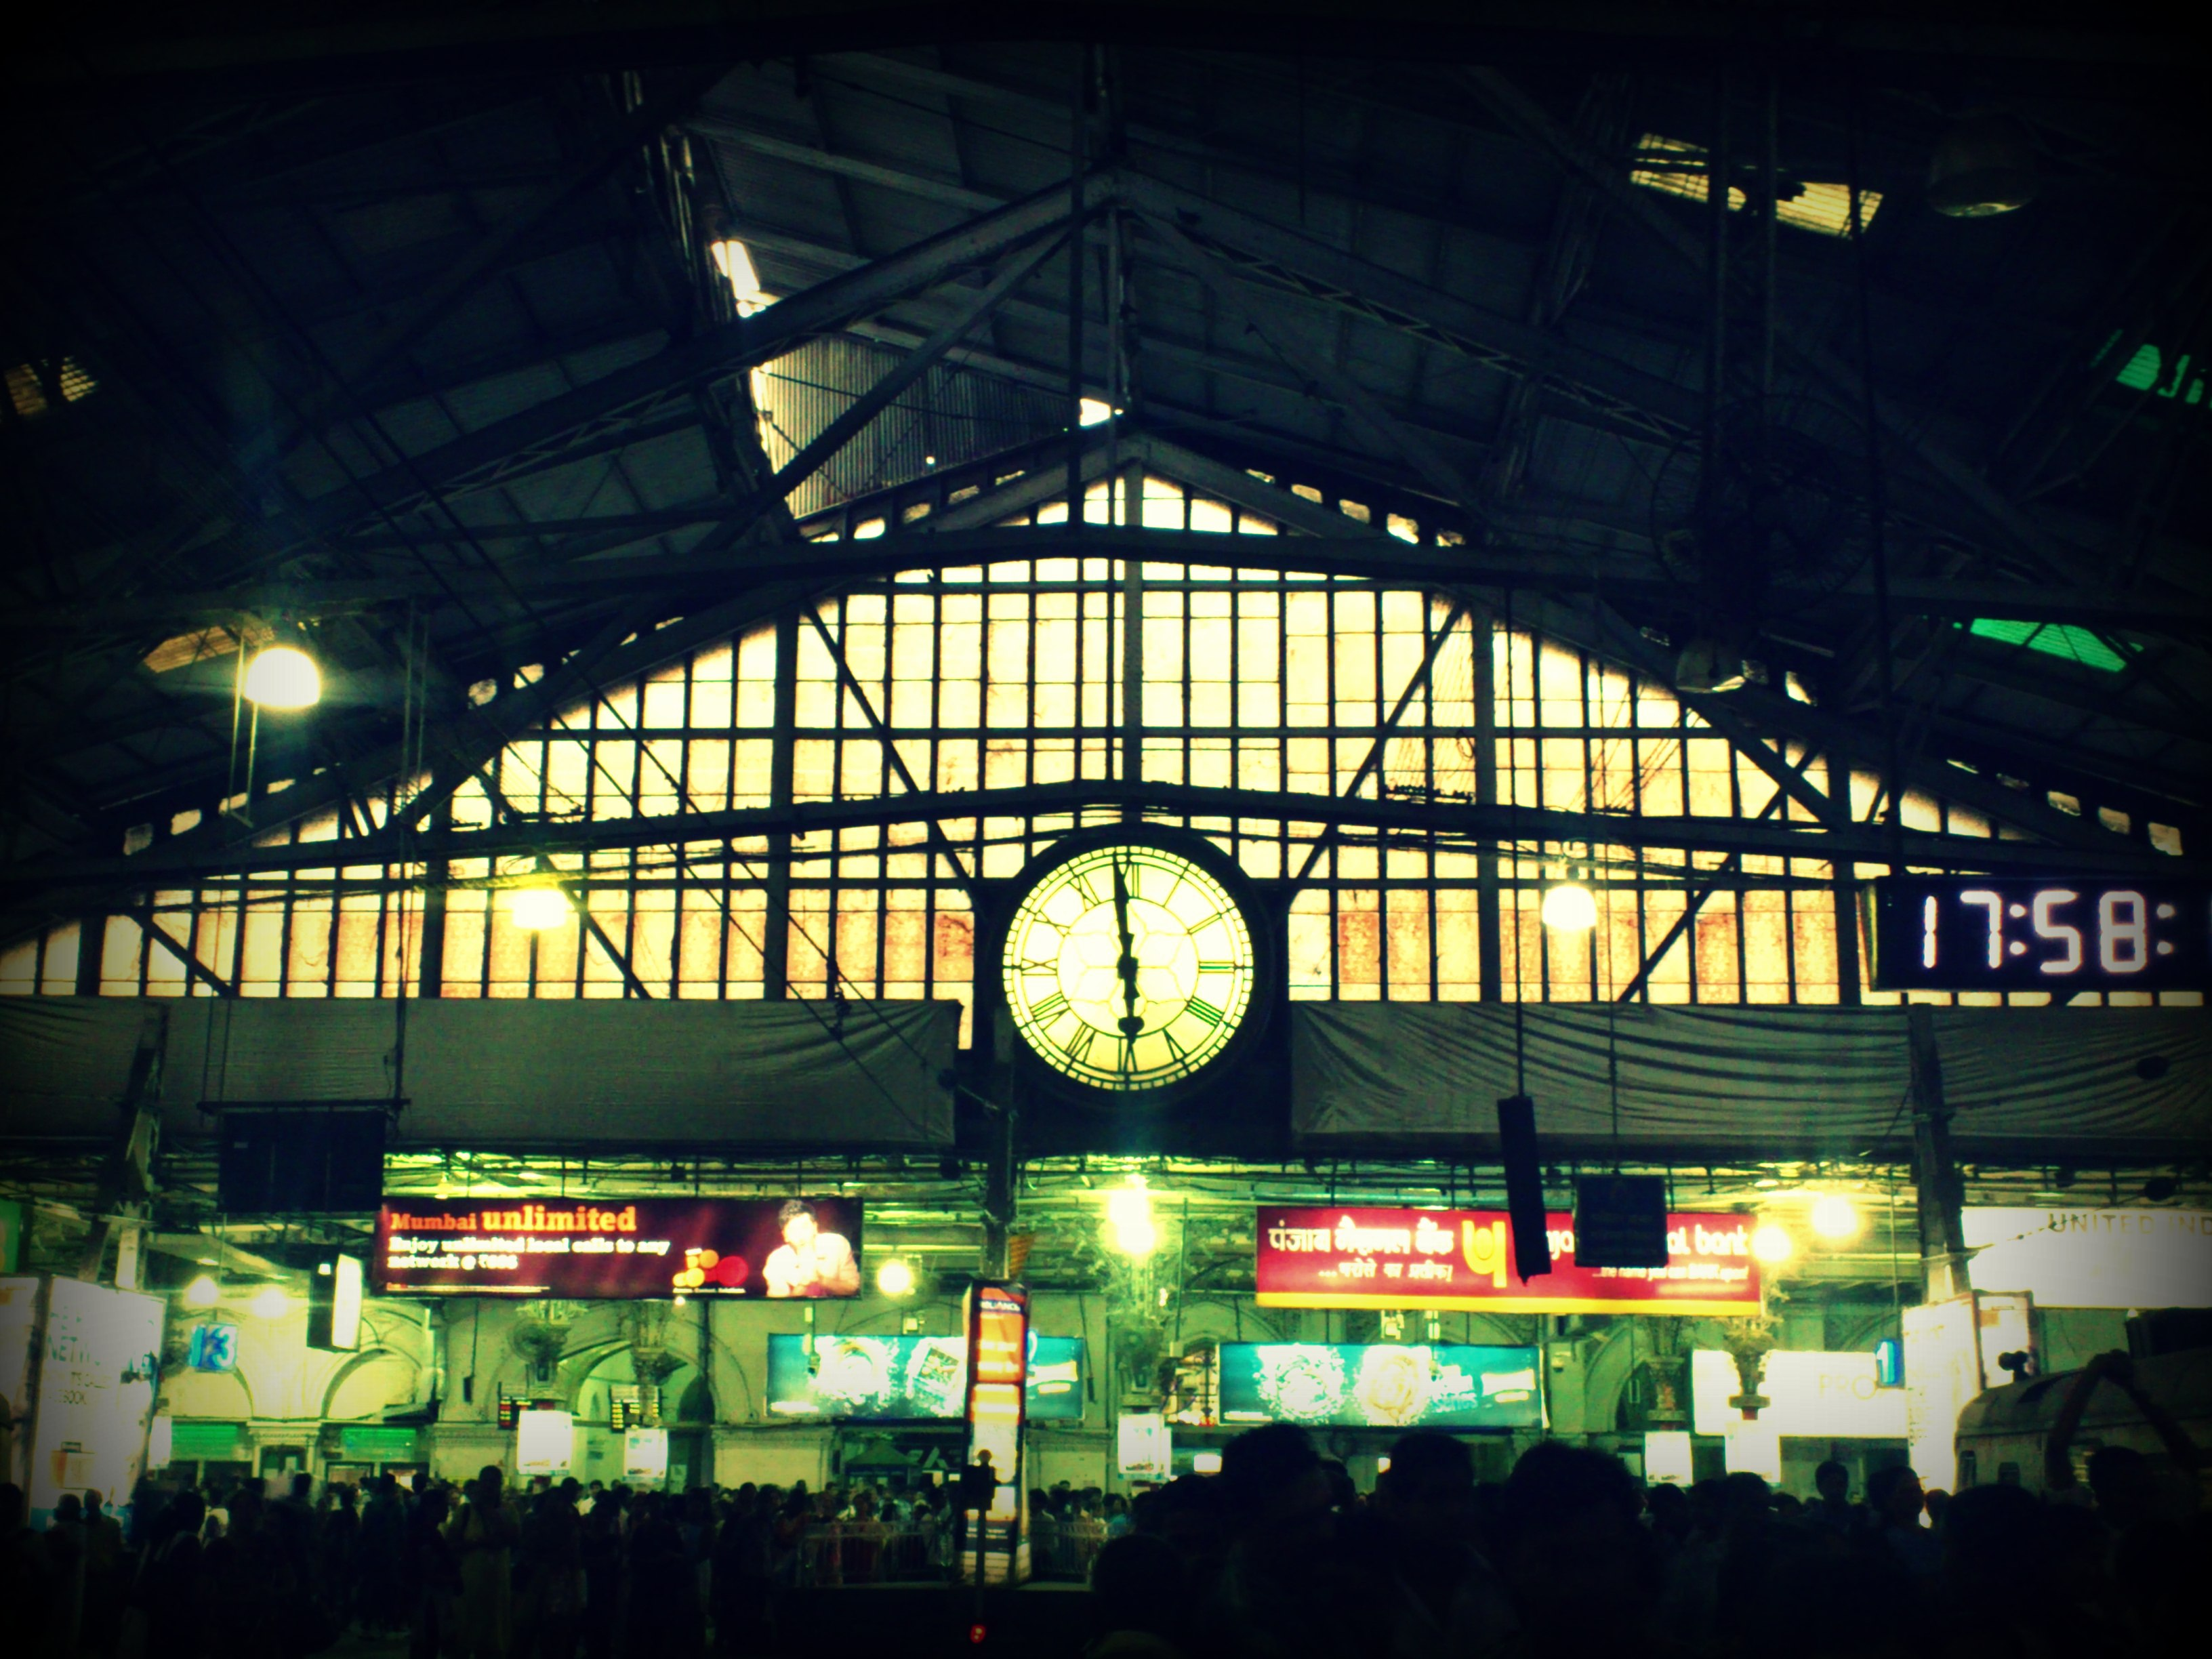 Legendary-Clock-at-VT-station